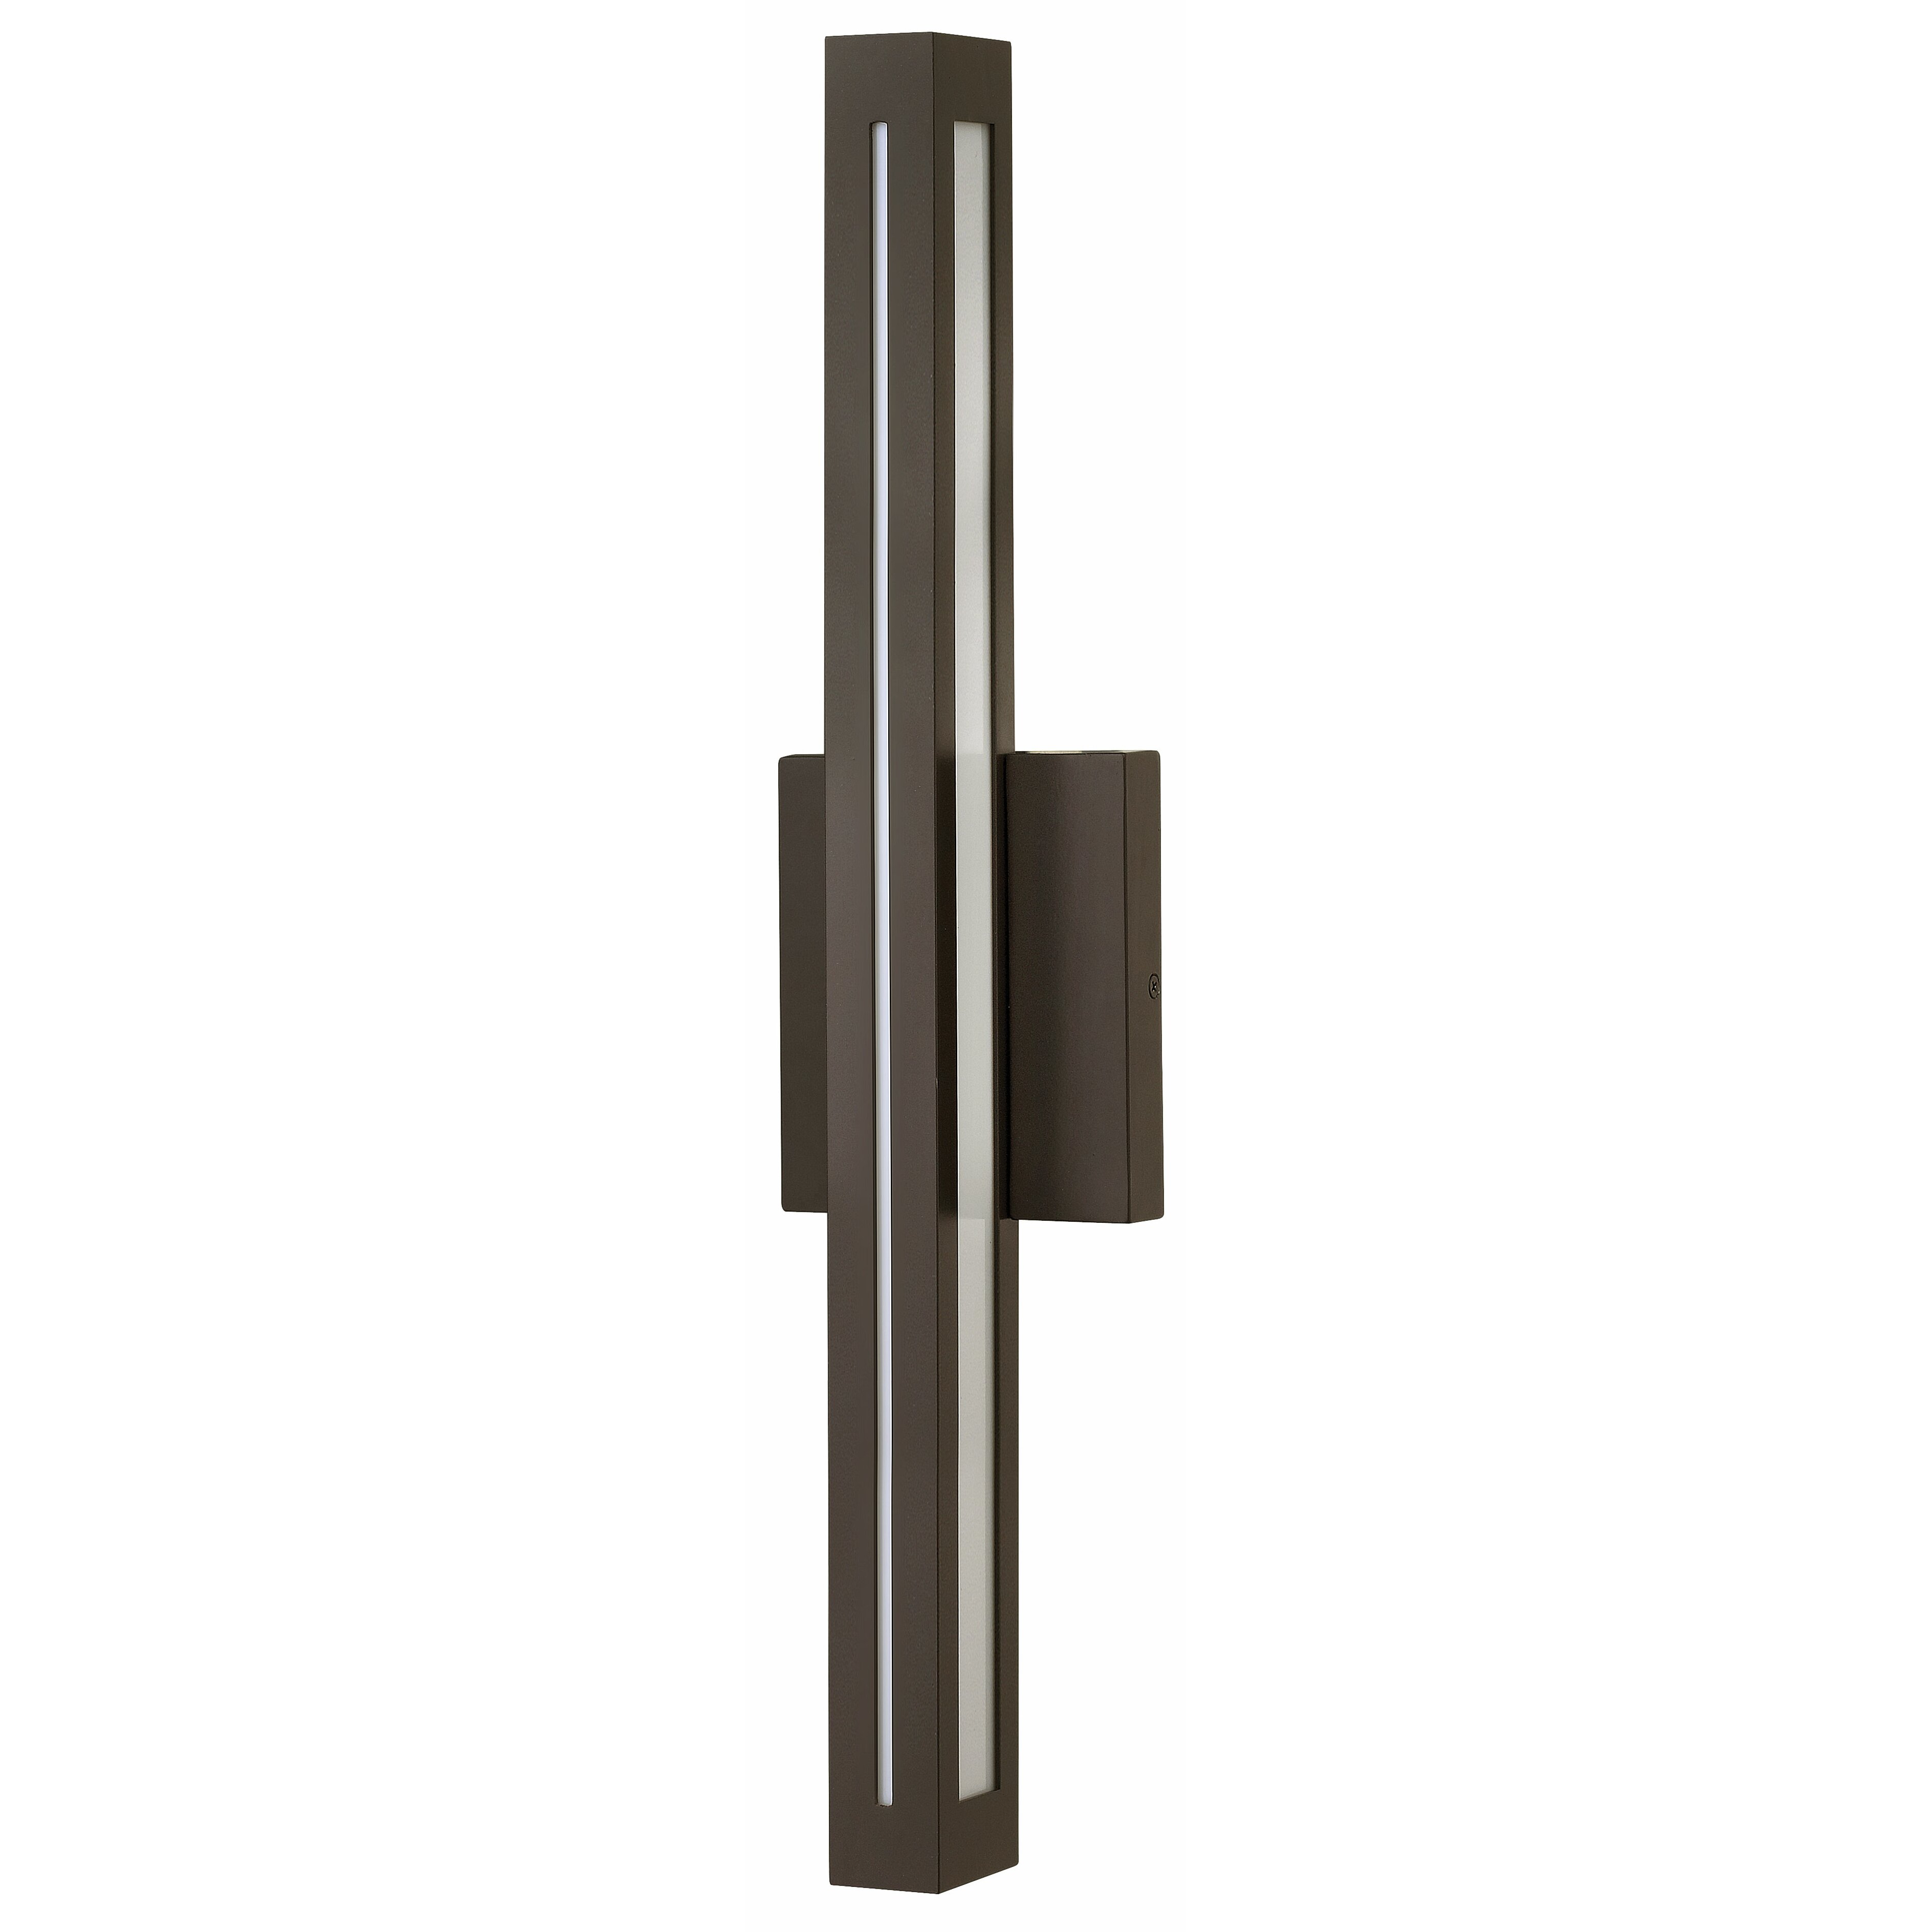 vue 2 light outdoor wall sconce by hinkley lighting. Black Bedroom Furniture Sets. Home Design Ideas